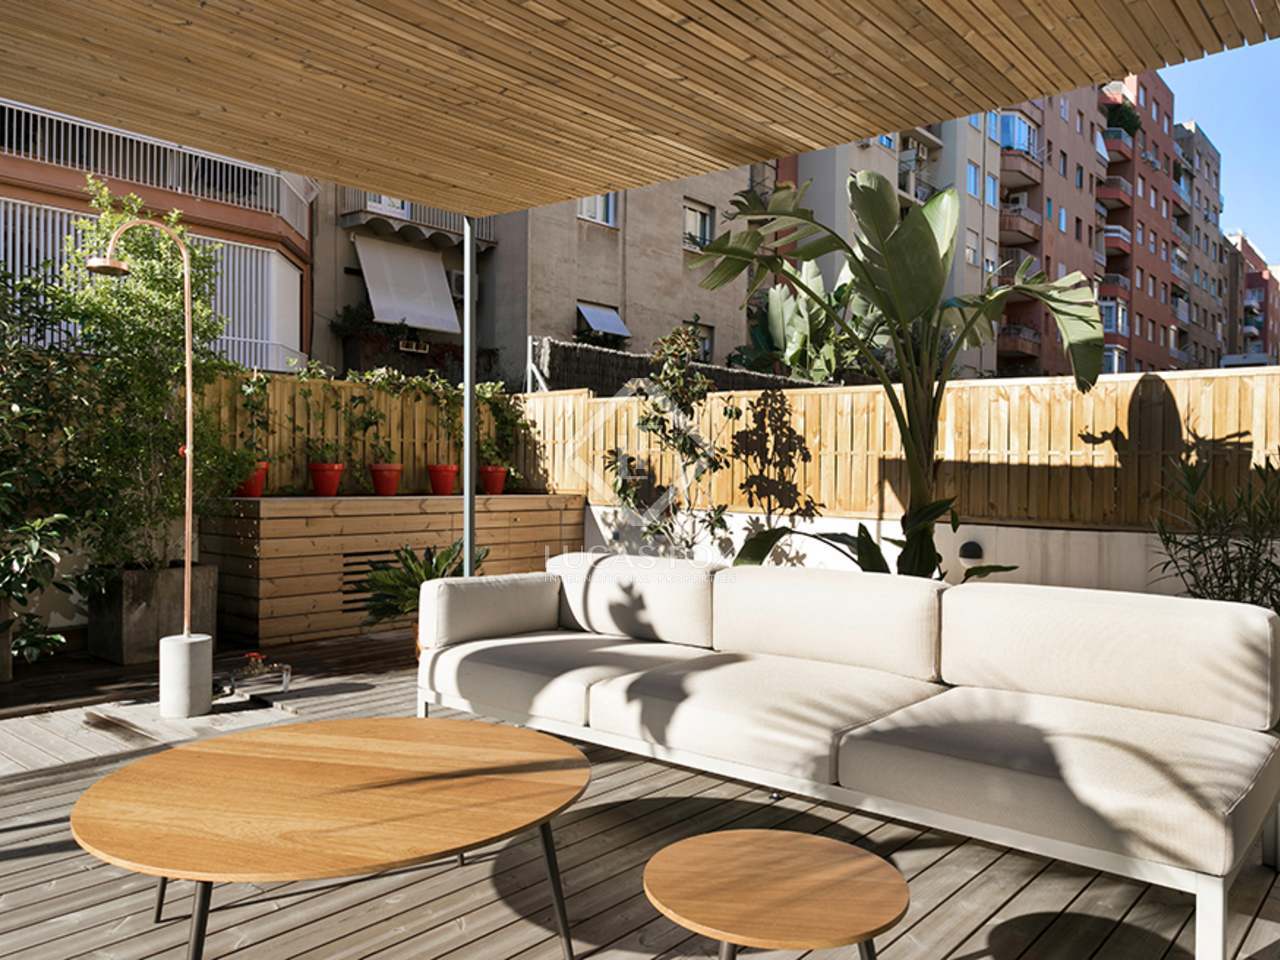 Renovated 125 m apartment with a terrace to buy tur park for 125 the terrace